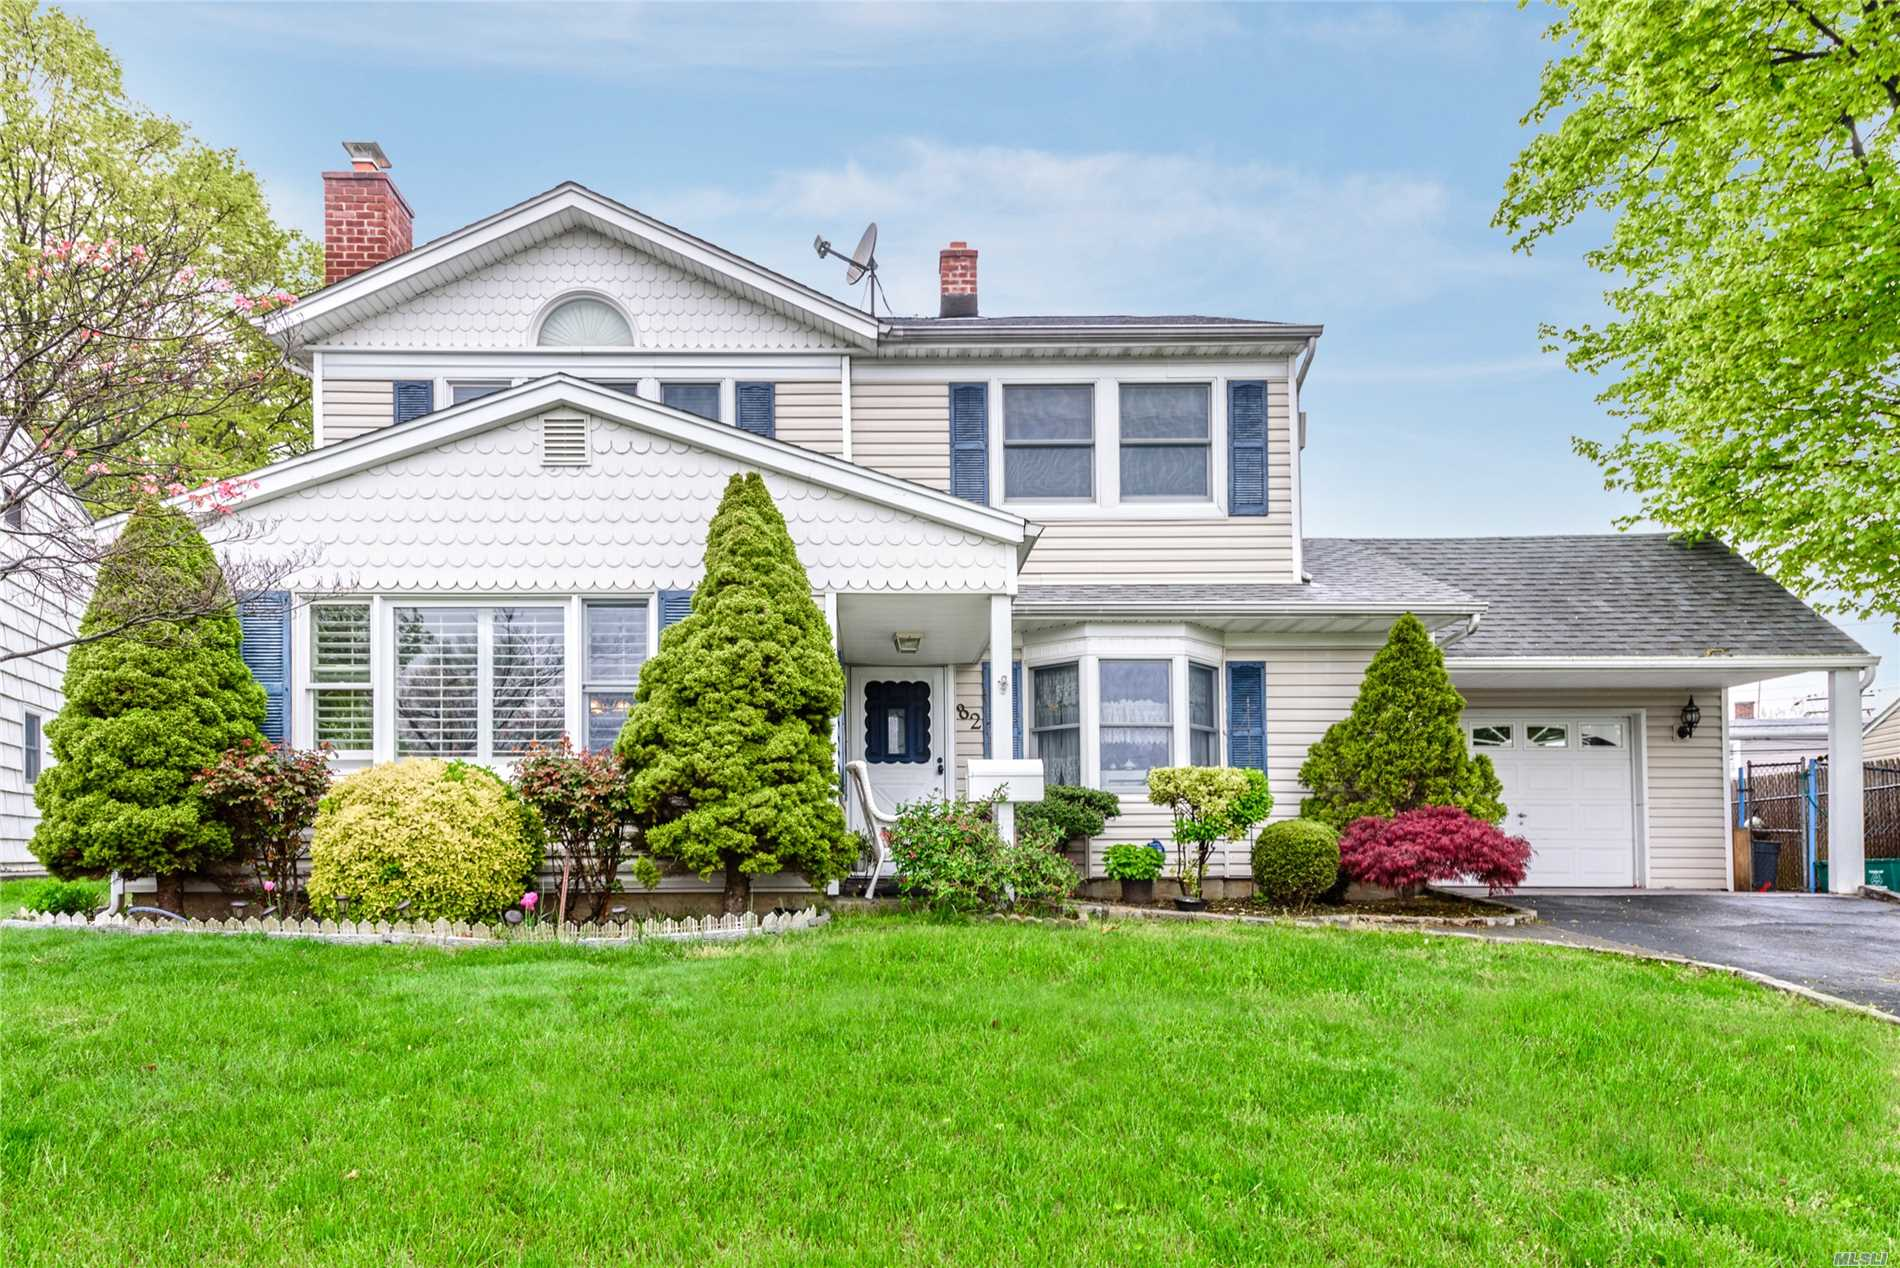 Beautiful Dwelling In A Desirable Part Of Levittown. Features Living Room, Dining Room, 4 Bedrooms, 2 Full Baths, Kitchen And Den With Access To Backyard. Close To Shopping And Lirr.